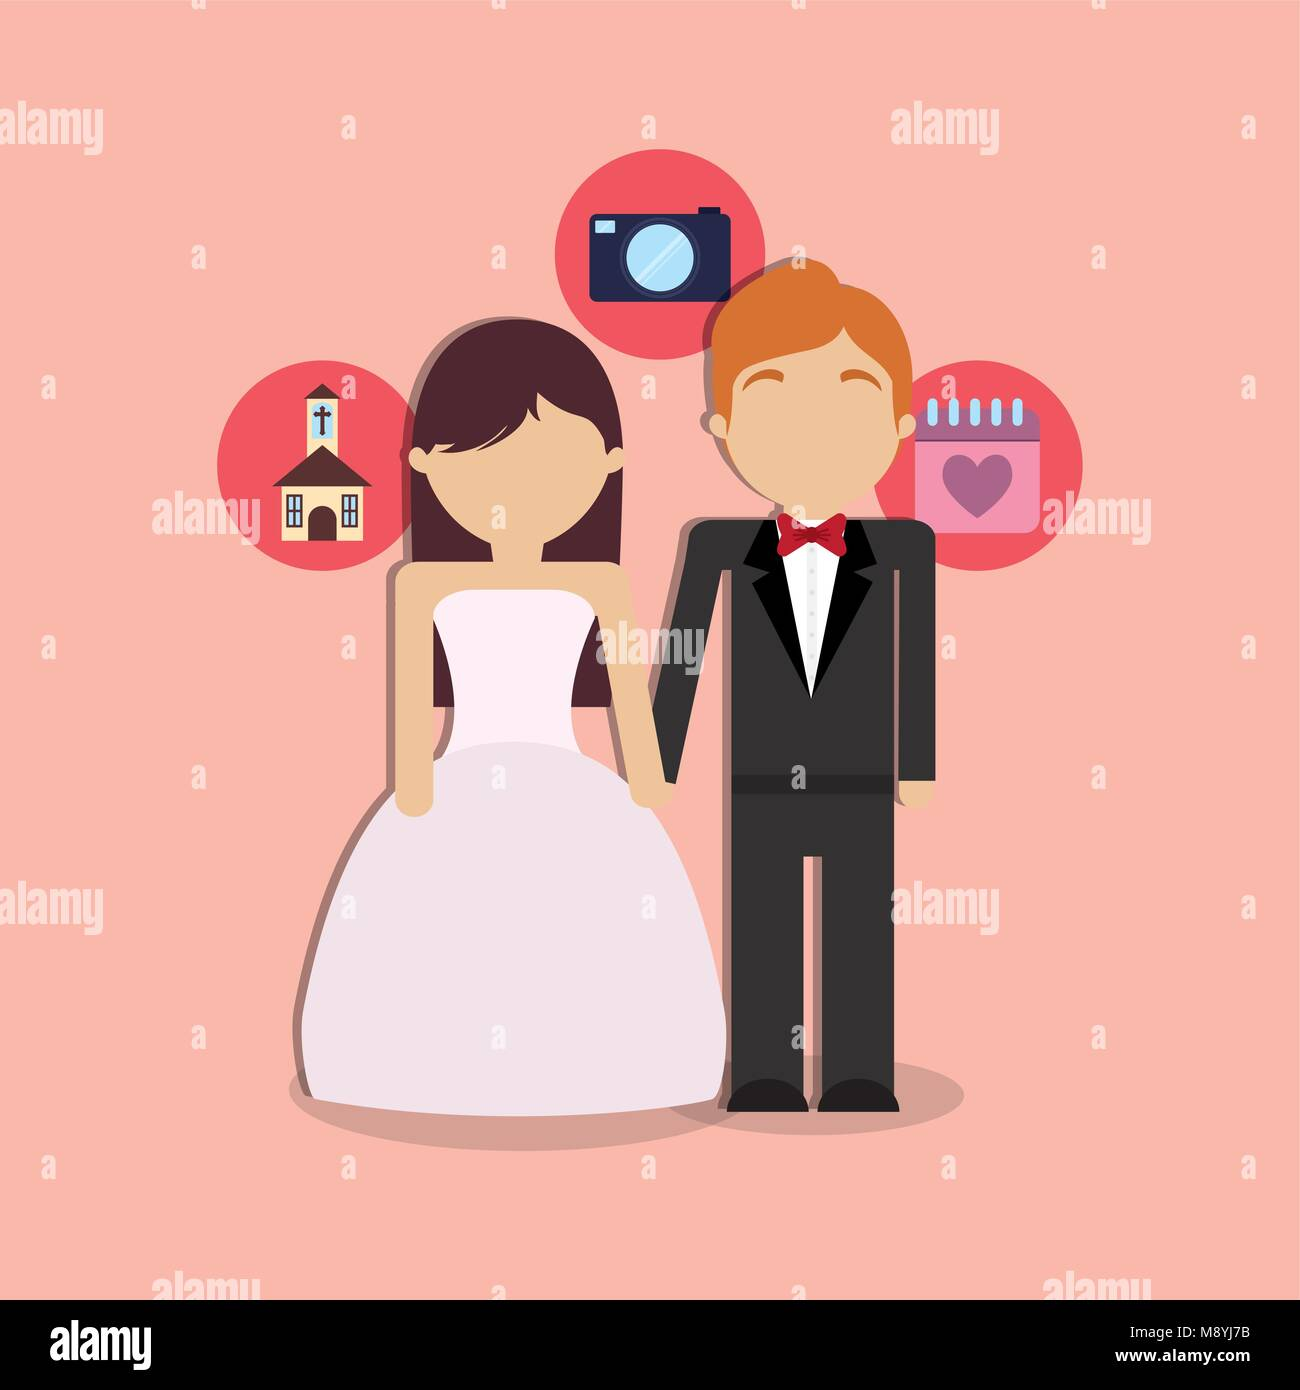 Wedding Icons Married Couple Stock Photos & Wedding Icons Married ...